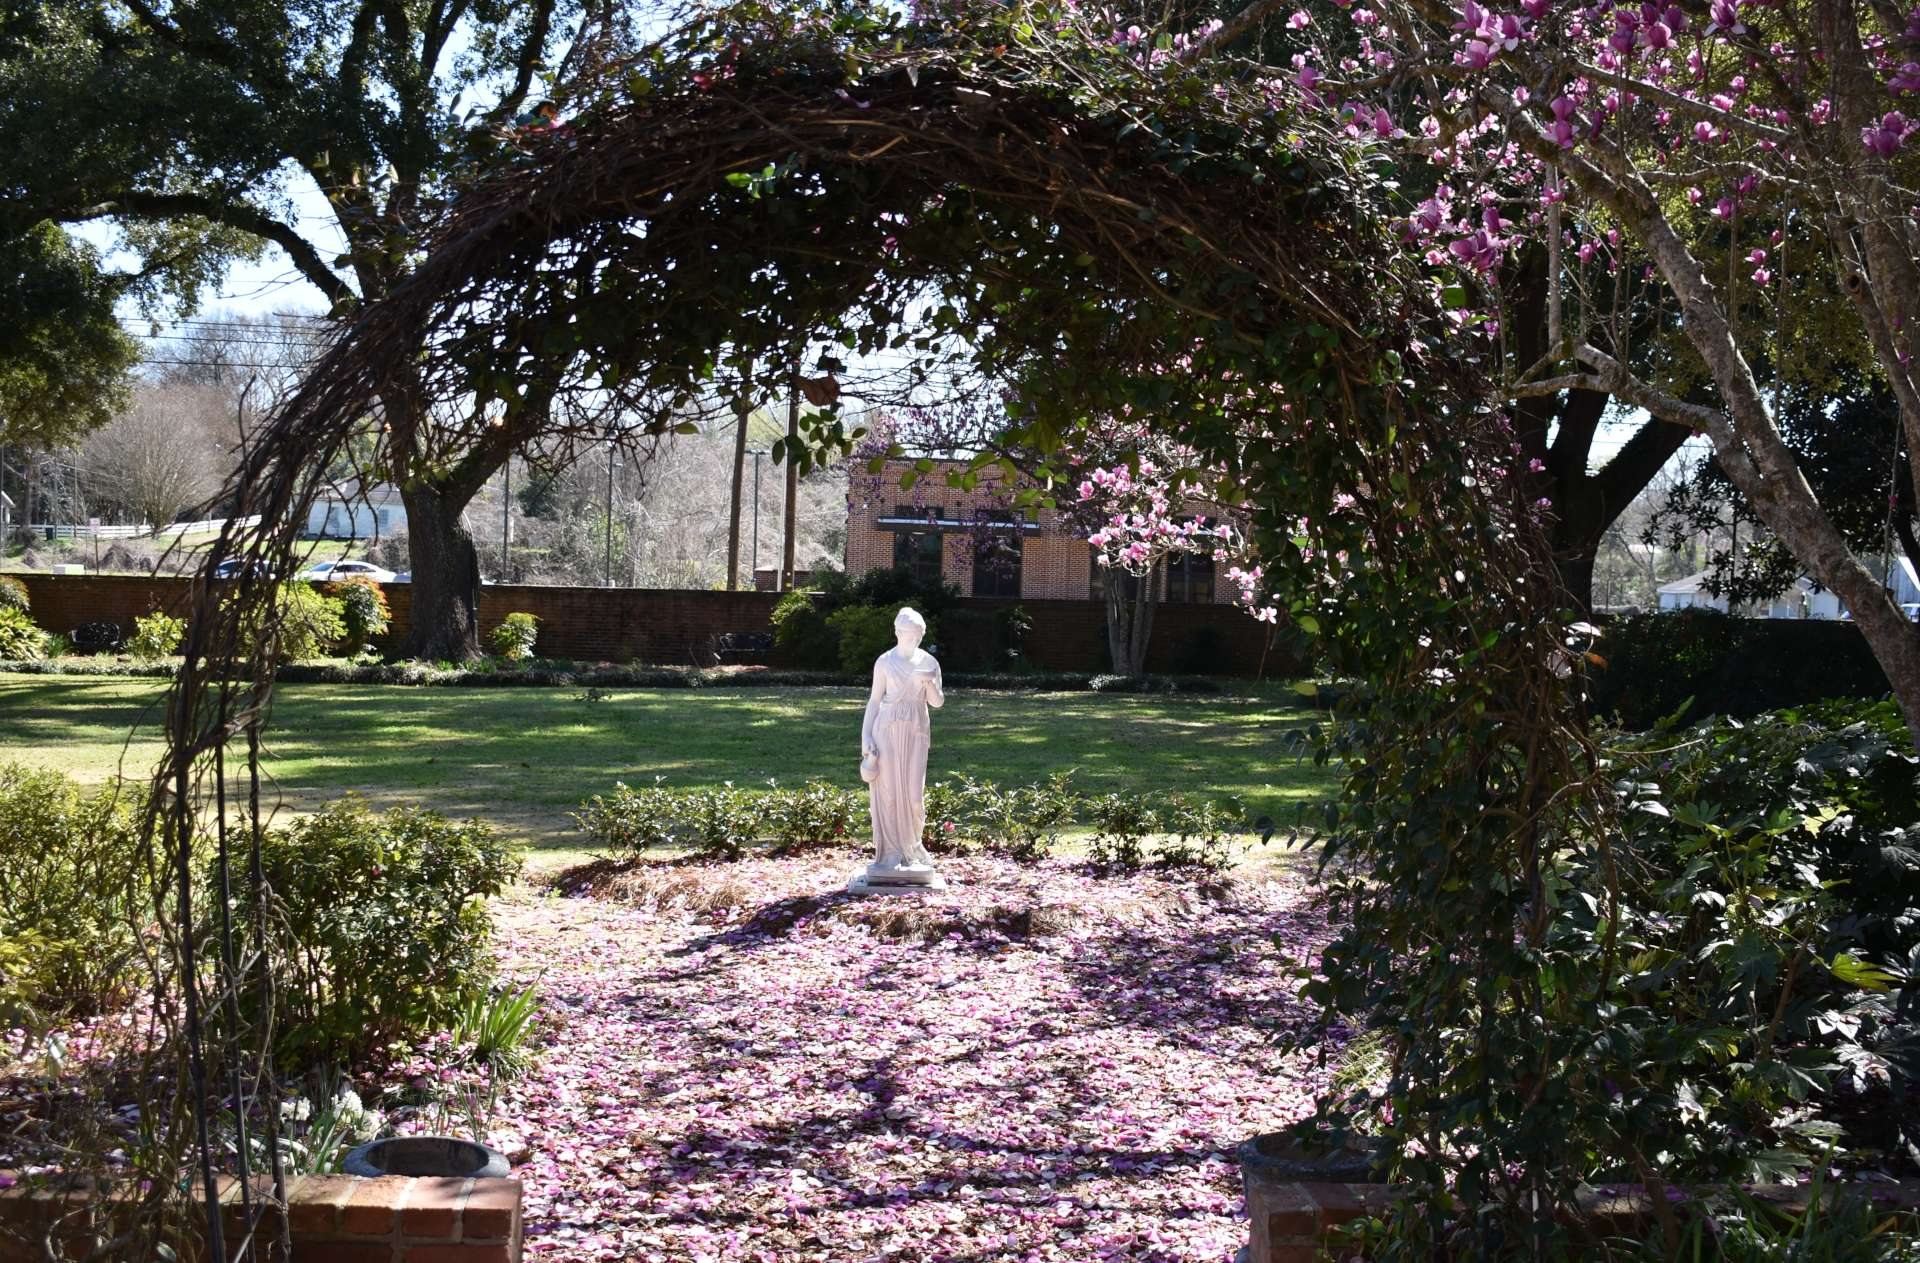 Female statue in garden through arch, magnolia petals on the ground